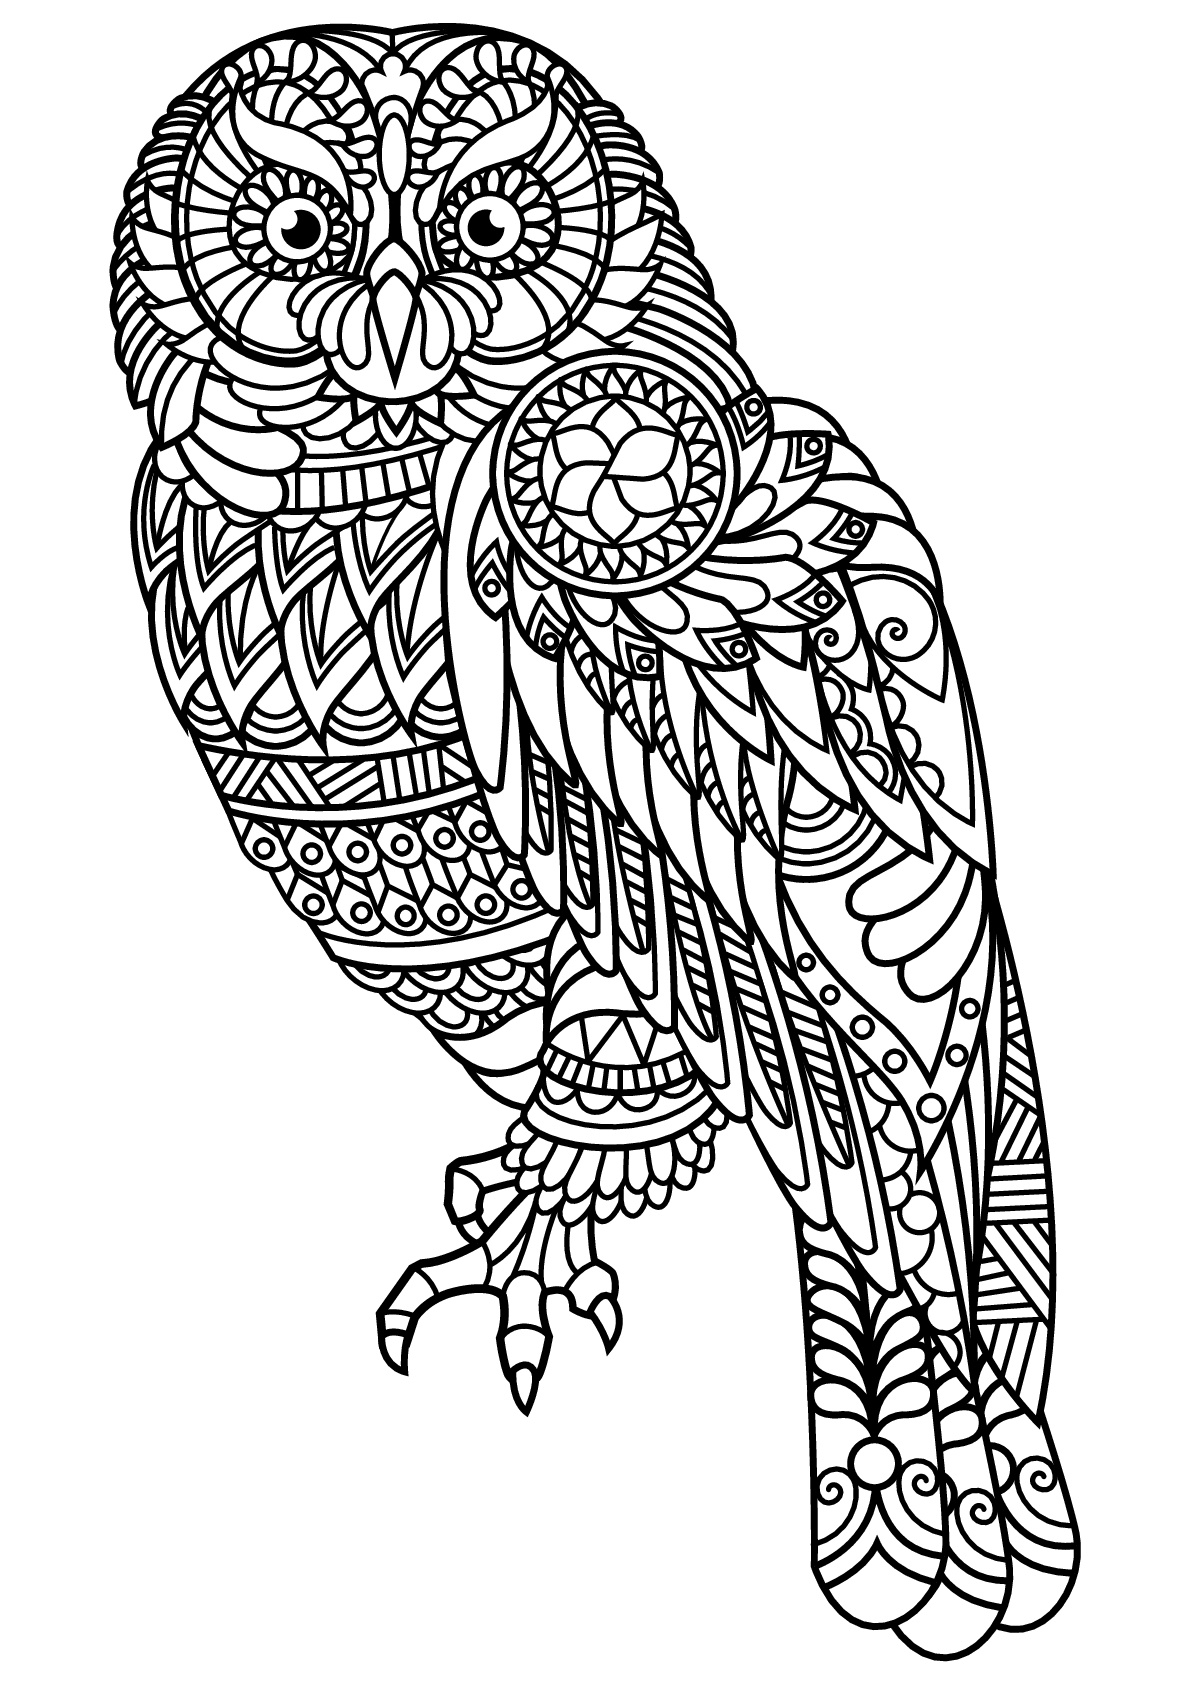 free printable coloring pages of owls owl coloring page clipart free stock photo public domain coloring owls printable pages of free